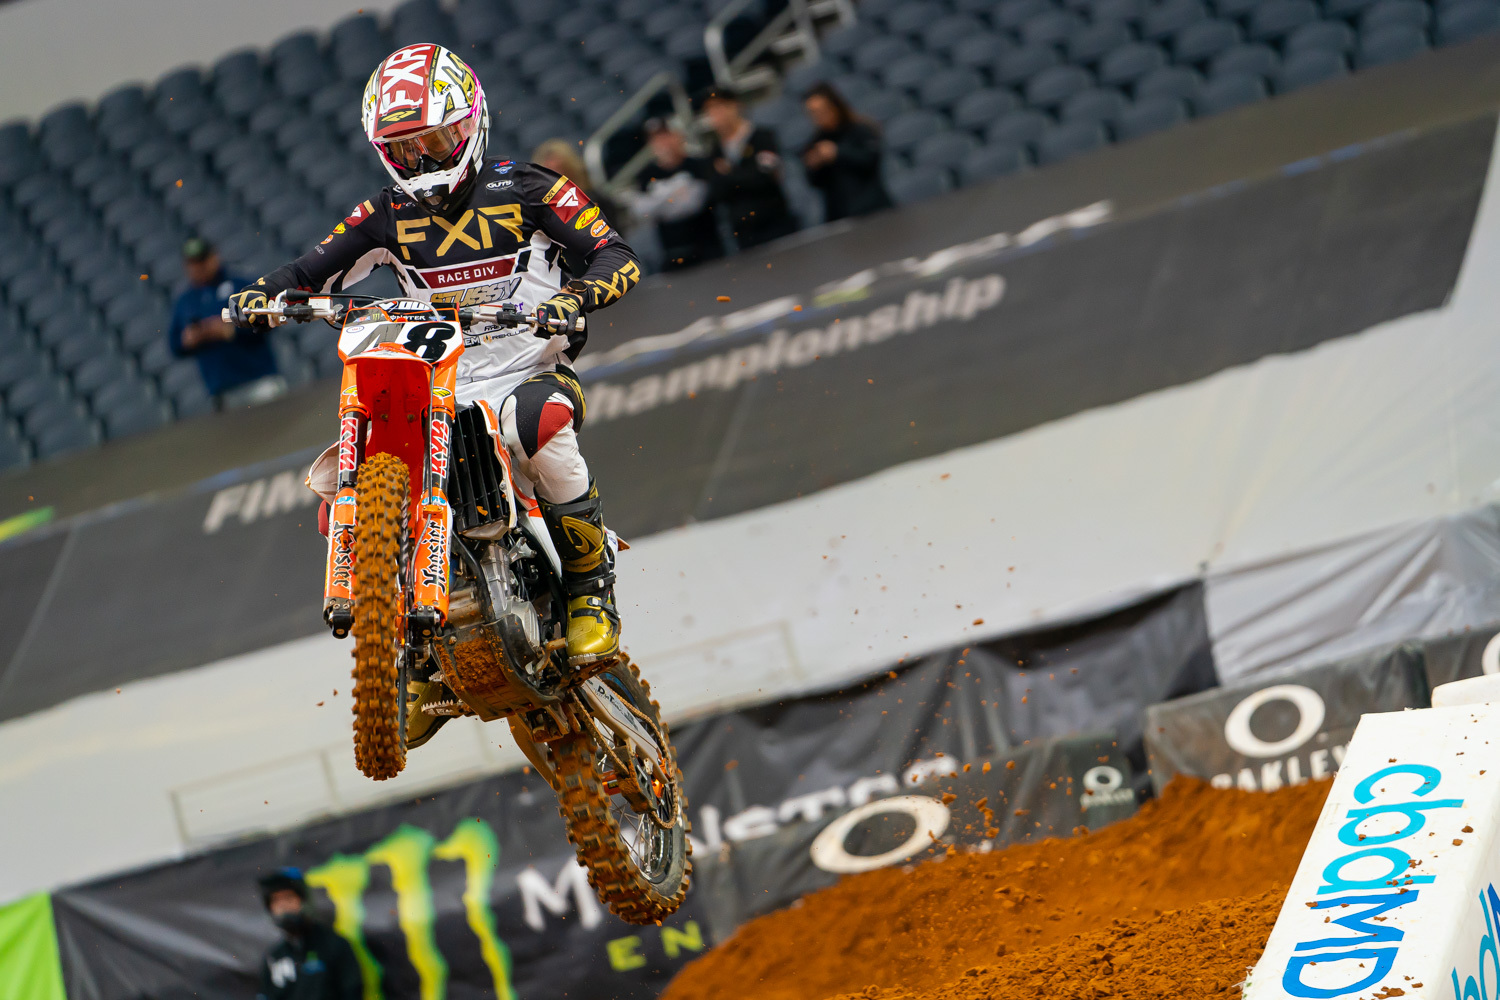 2020-ARLINGTON-SUPERCROSS_KICKSTART_0025